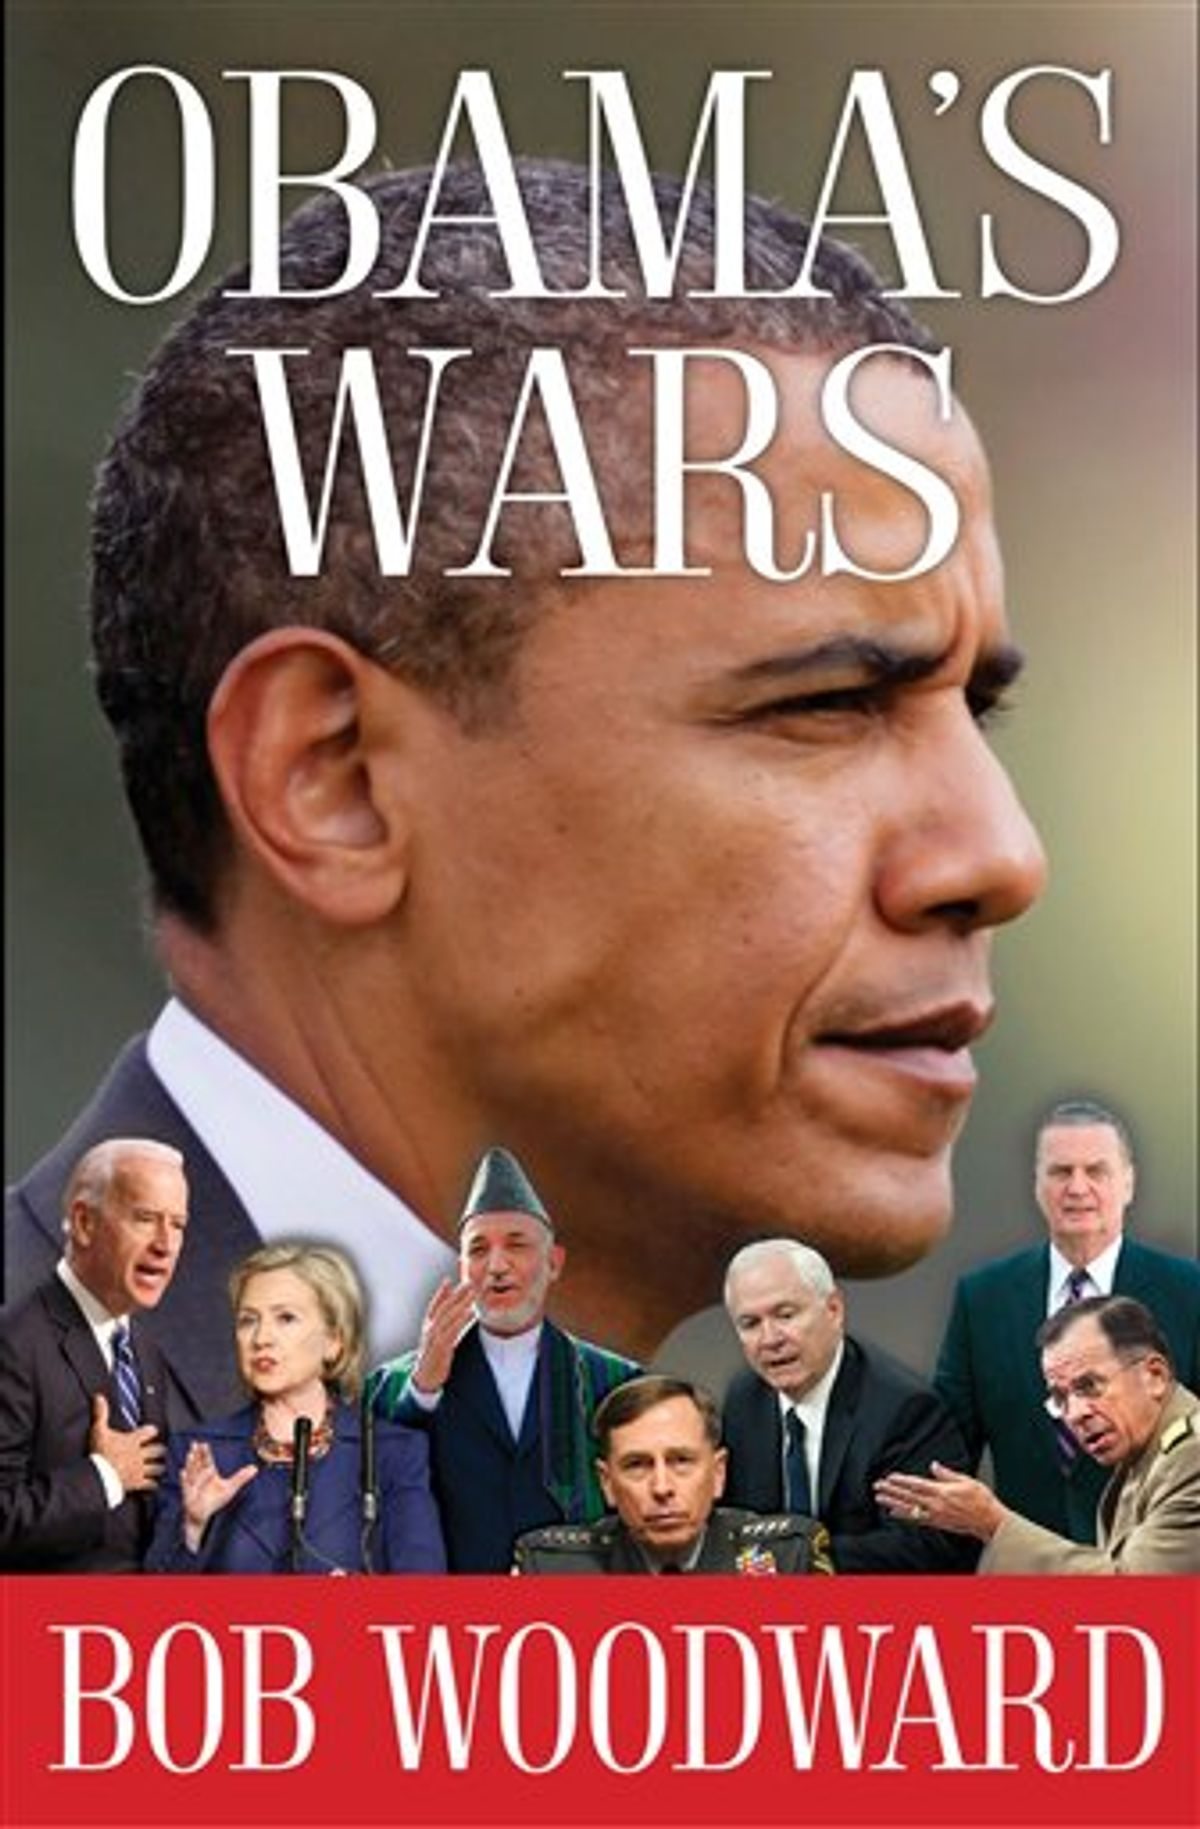 """This image provided by Simon & Schuster shows the cover of Bob Woodward's new book, """"Obama's Wars"""". Woodward's latest investigative work will run 441 pages and show Obama """"making the critical decisions on the Afghanistan War, the secret war in Pakistan and the worldwide fight against terrorism,"""" Simon & Schuster announced Tuesday Sept. 7, 2010. The book is scheduled to go on sale Sept. 27, 2010. (AP Photo/Simon & Schuster) NO SALES (AP)"""